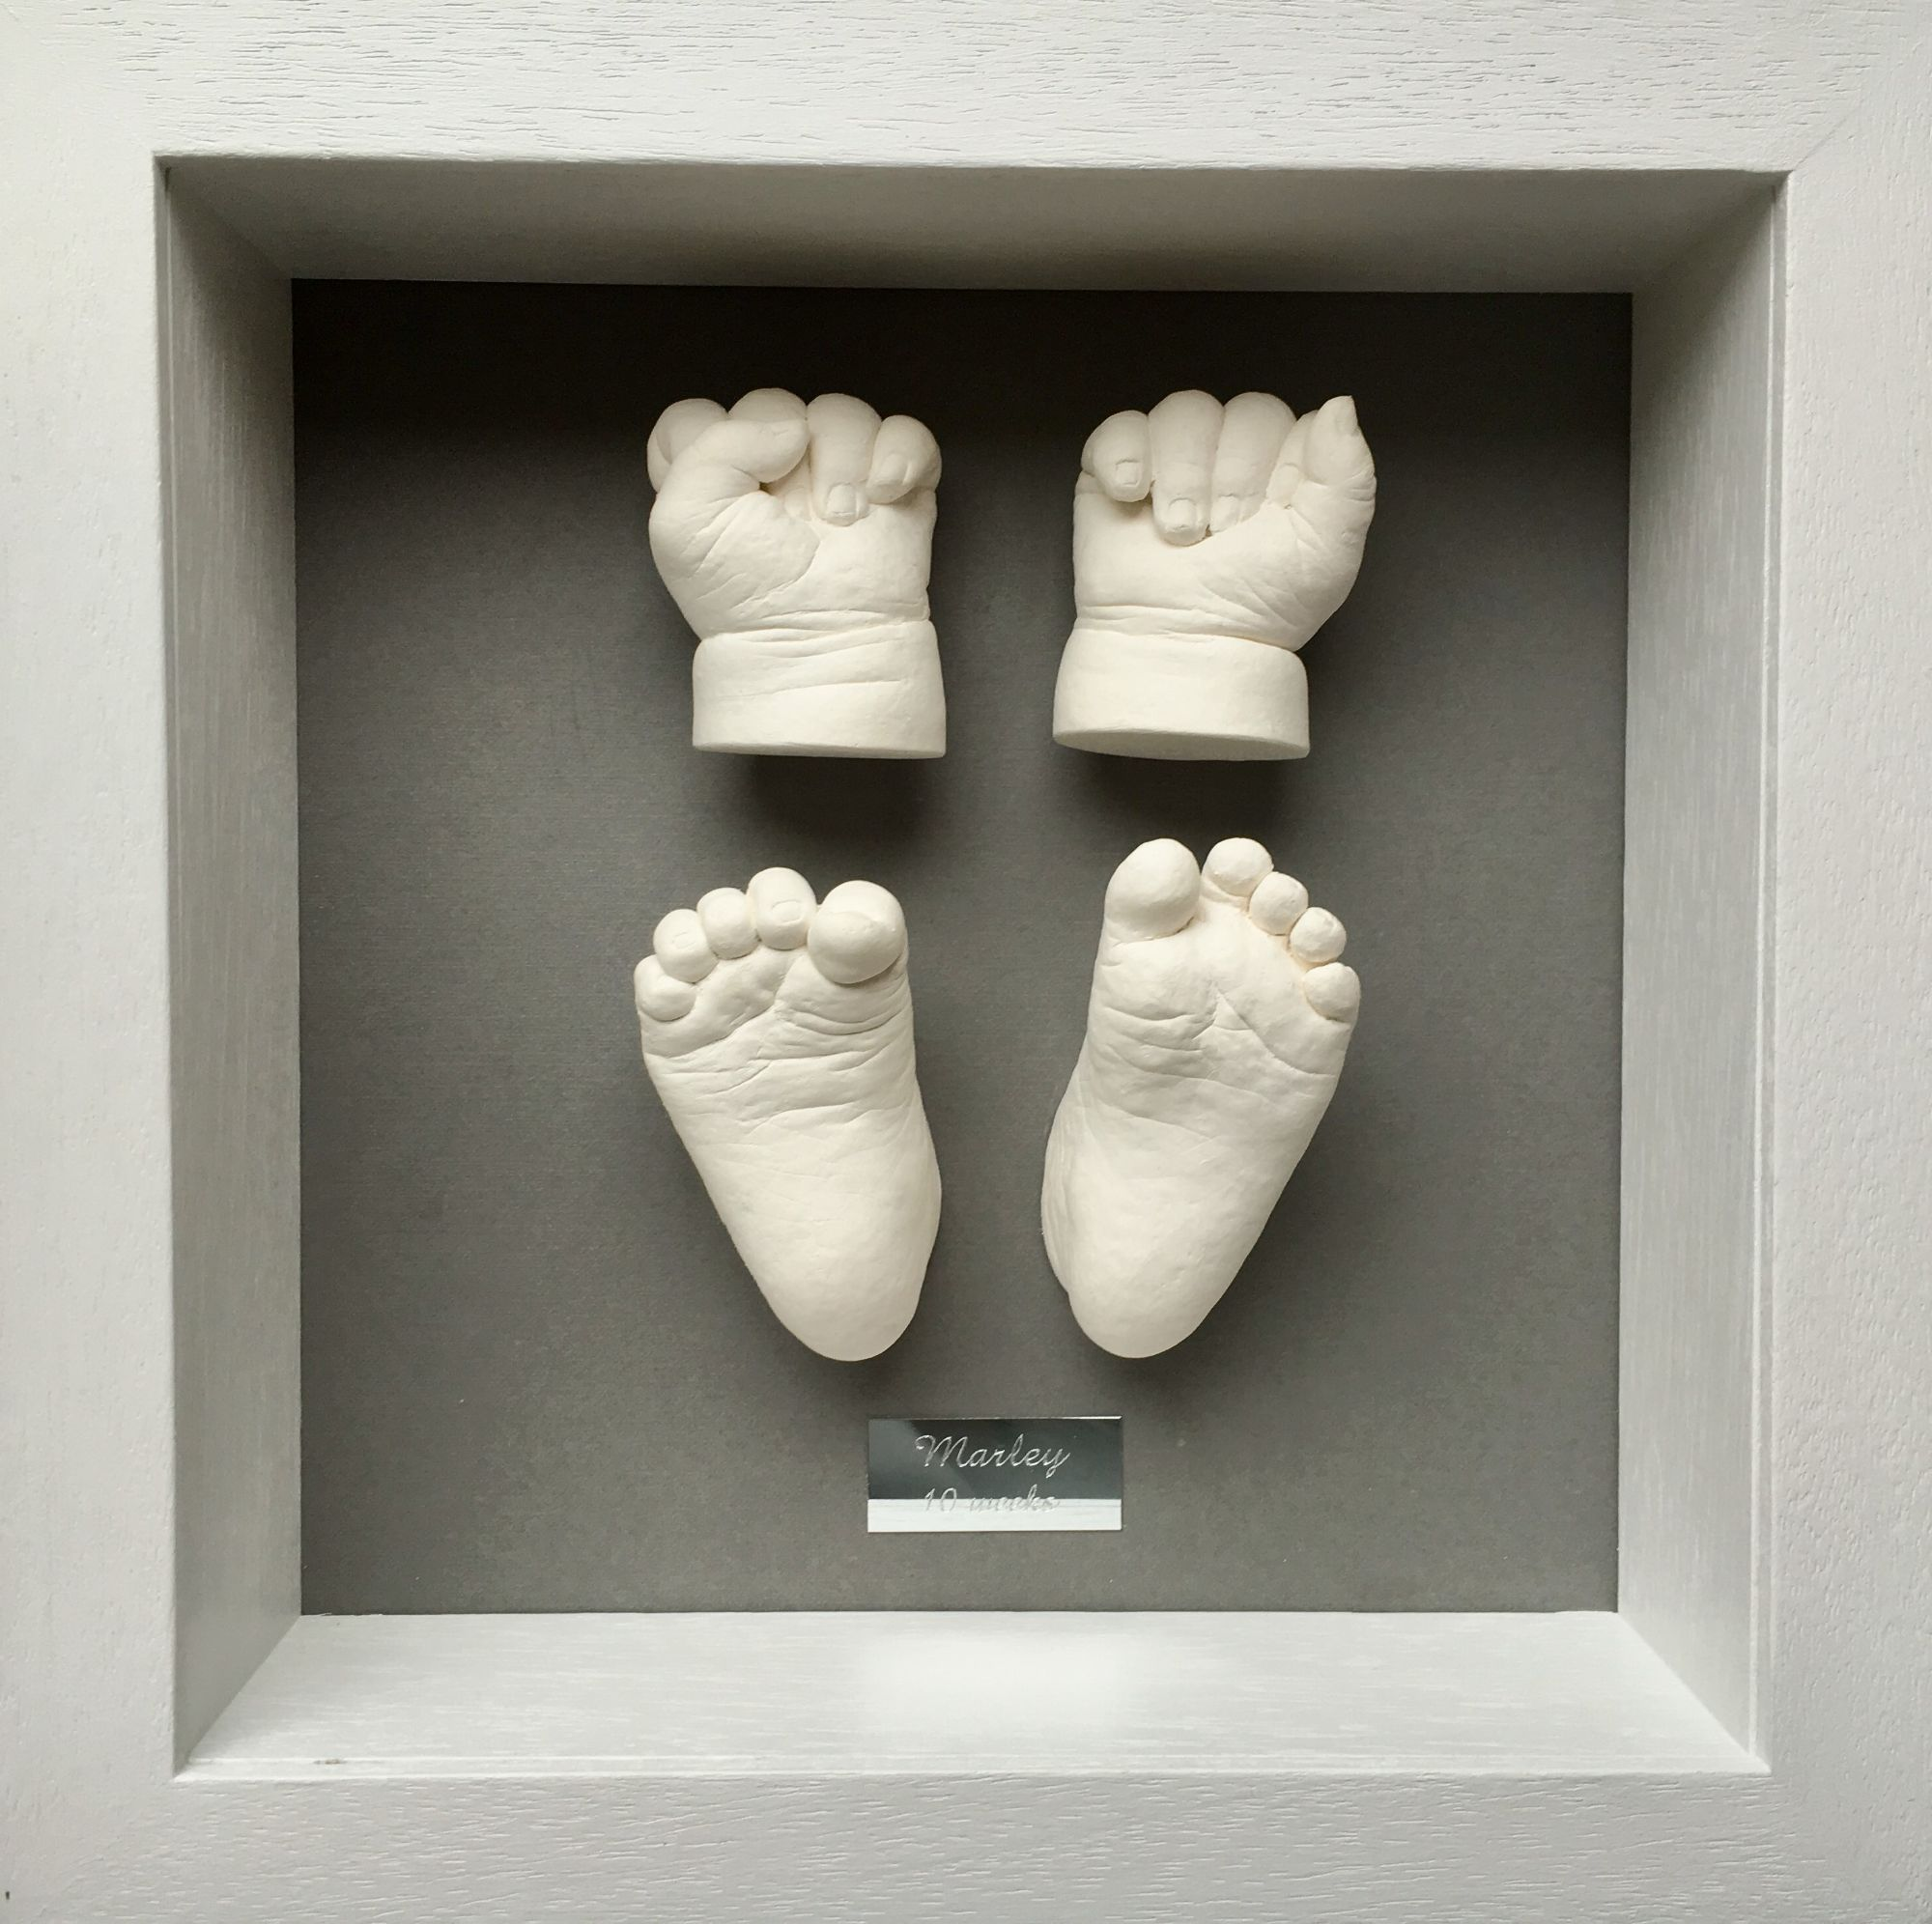 3d plaster hands and feet